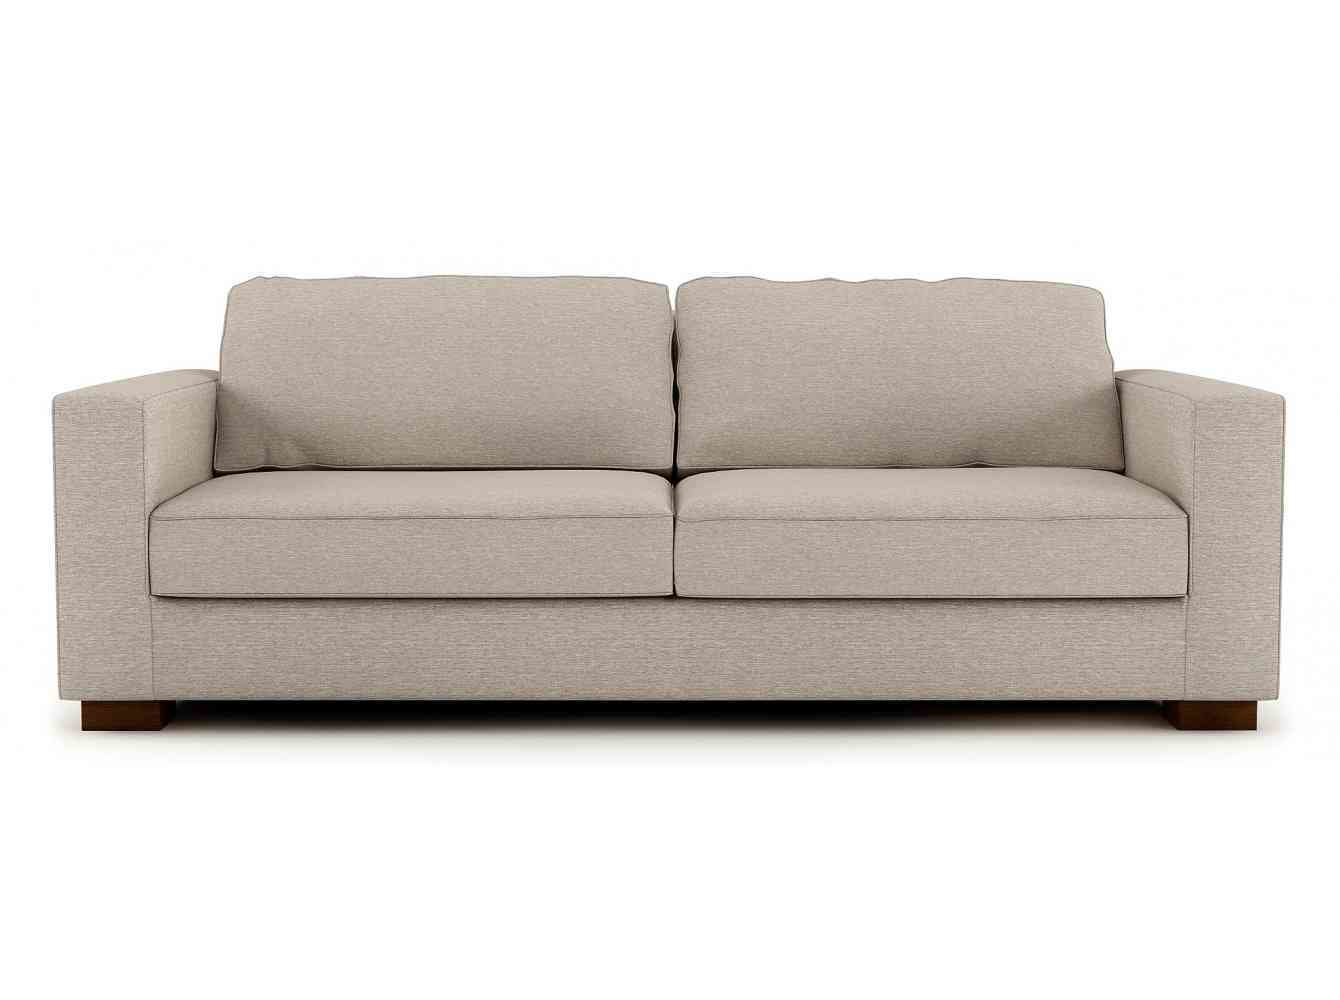 Sofas by Stem